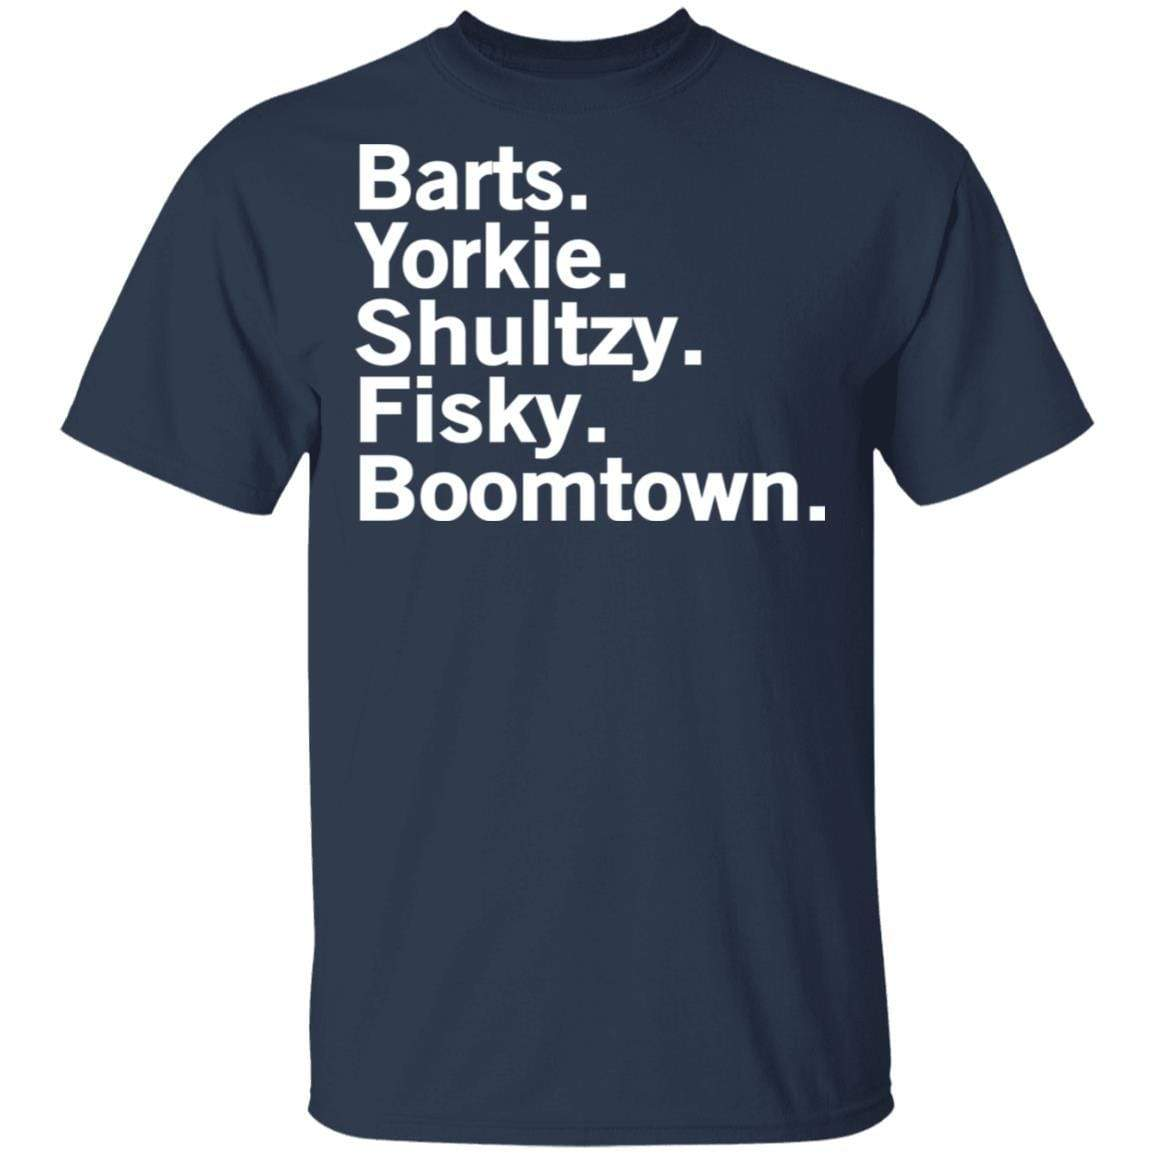 Barts Yorkie Shultzy Fisky Boomtown T-Shirts, Hoodies 1049-9966-86894761-48248 - Tee Ript